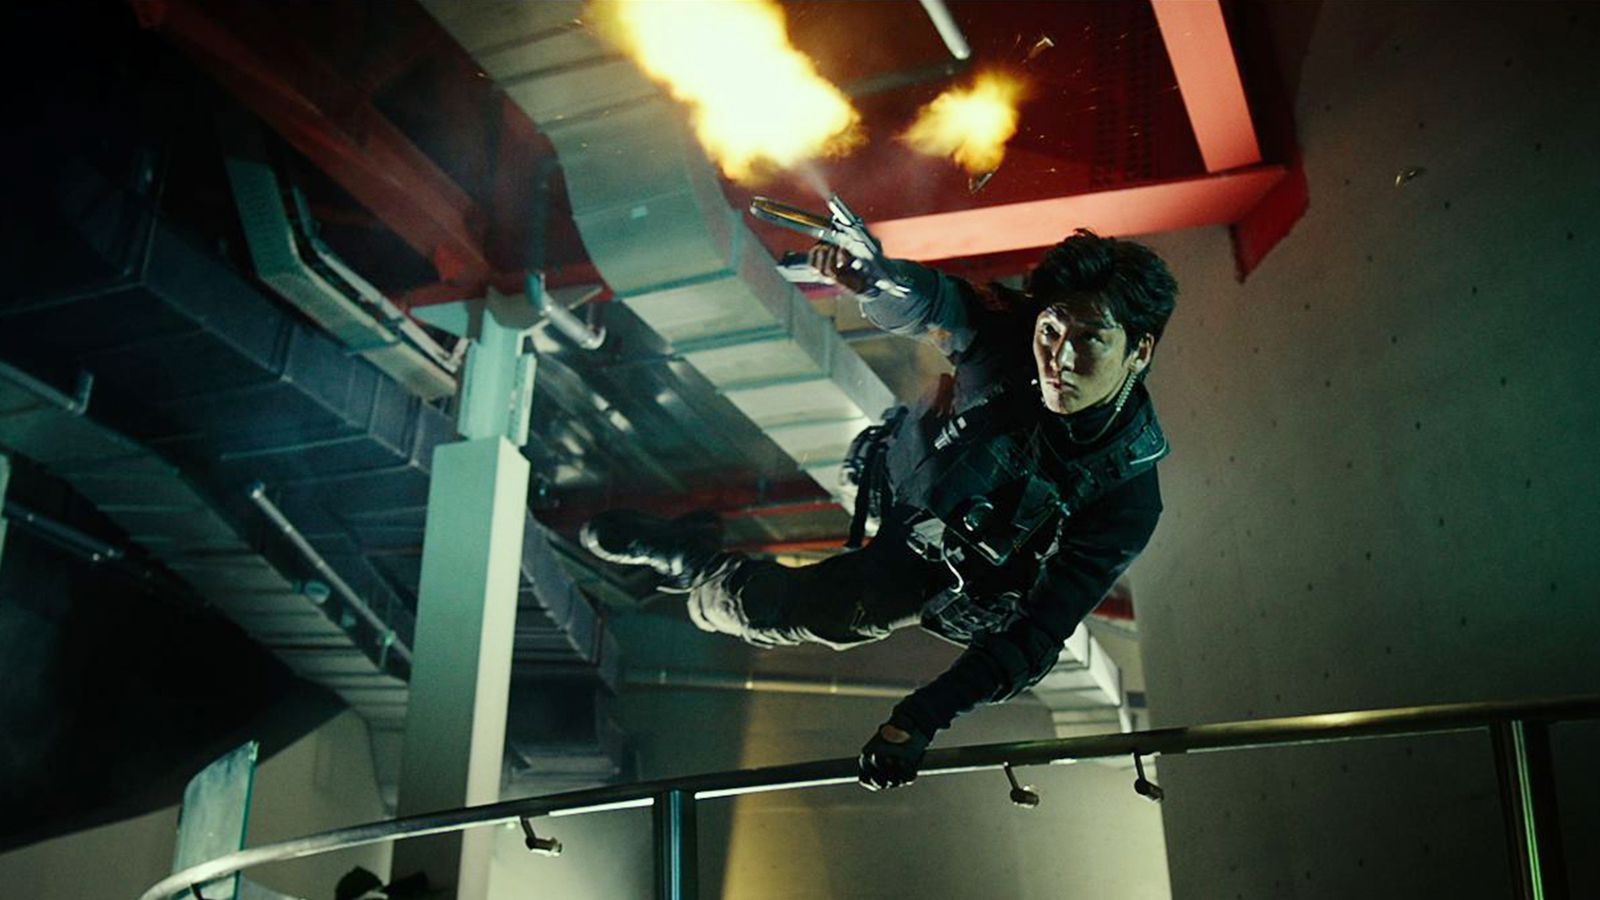 South Korean action film Fabricated City is perfect for Inception fans